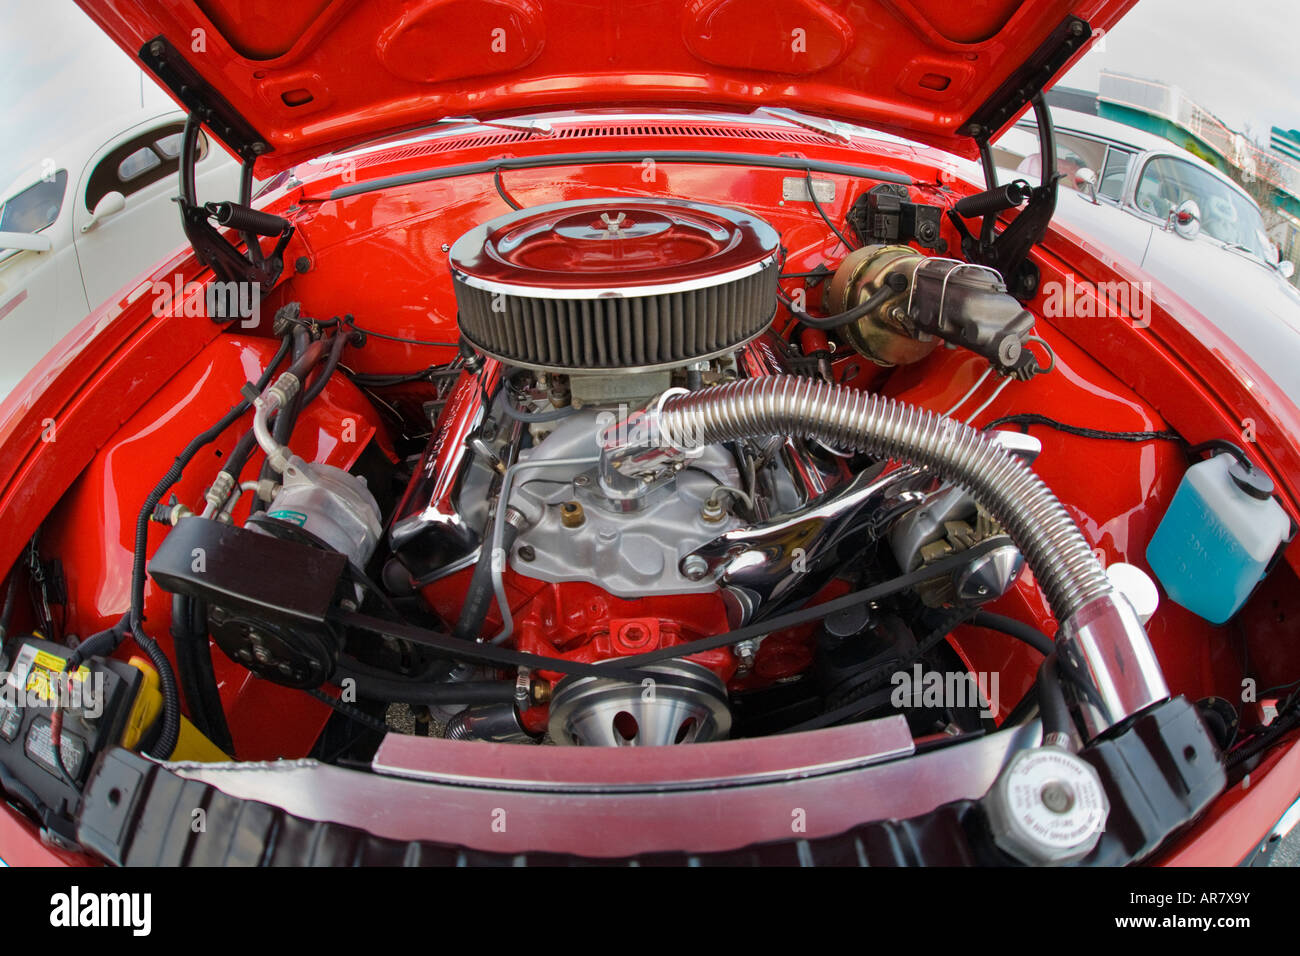 American Muscle Car Engine With Chrome Stock Photo Royalty Free